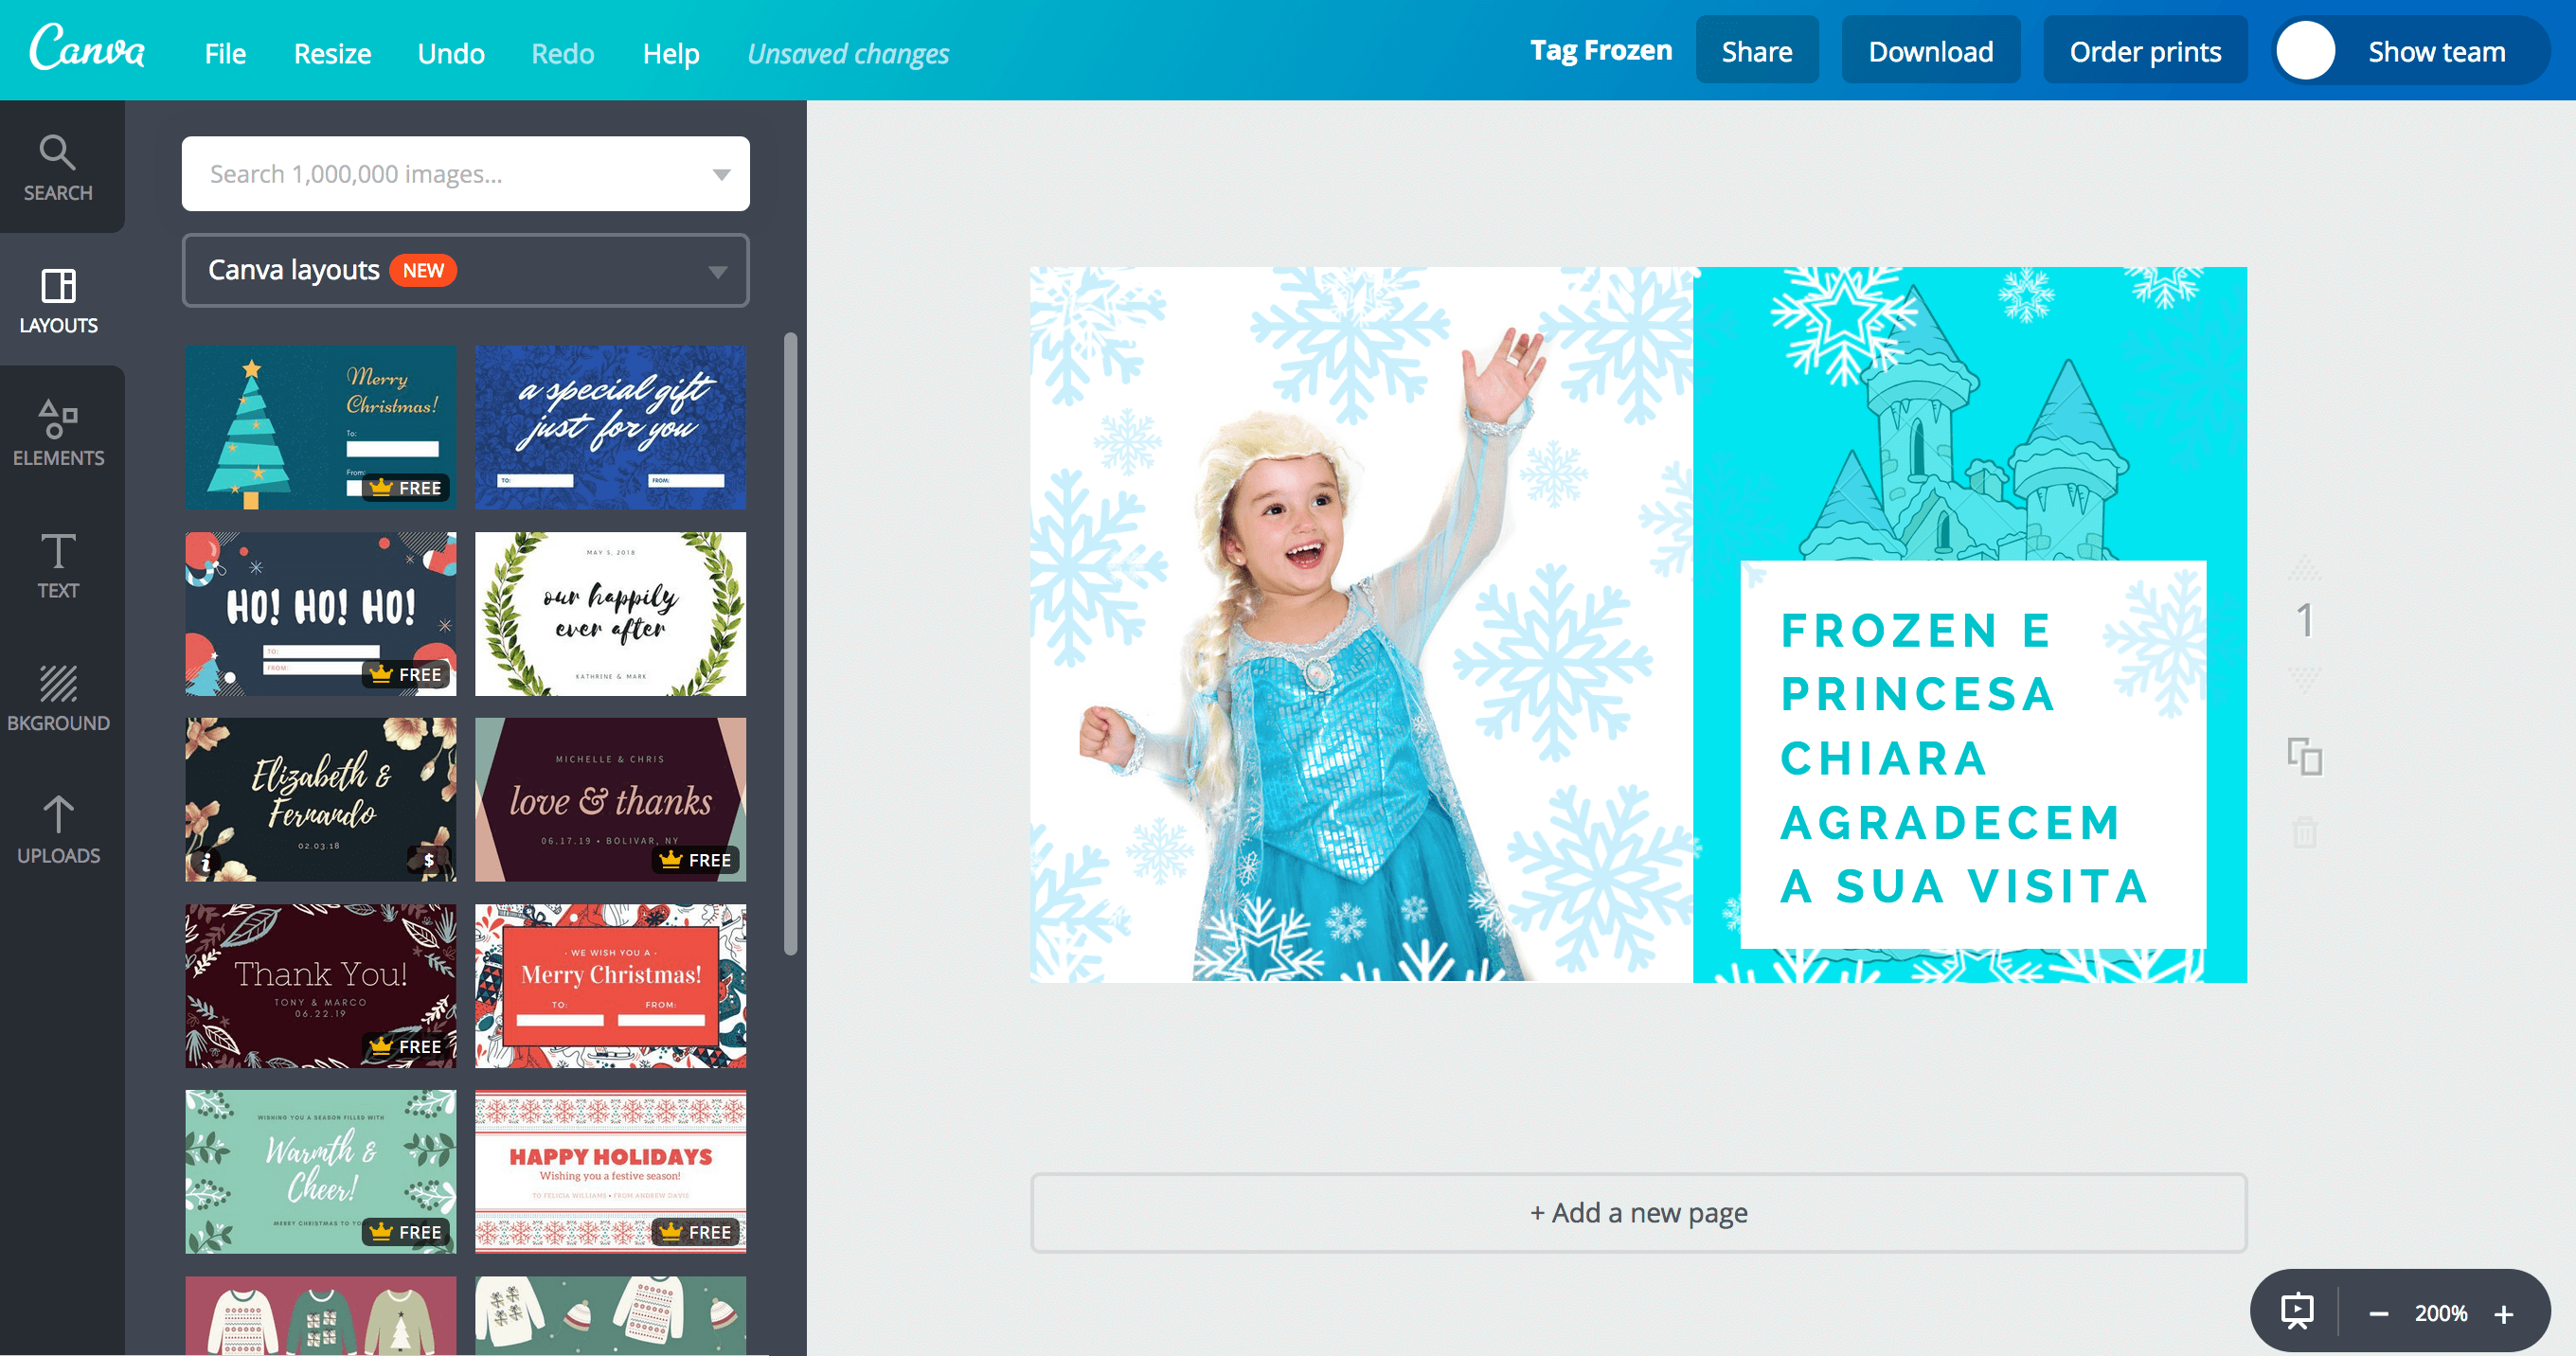 Tags da Frozen